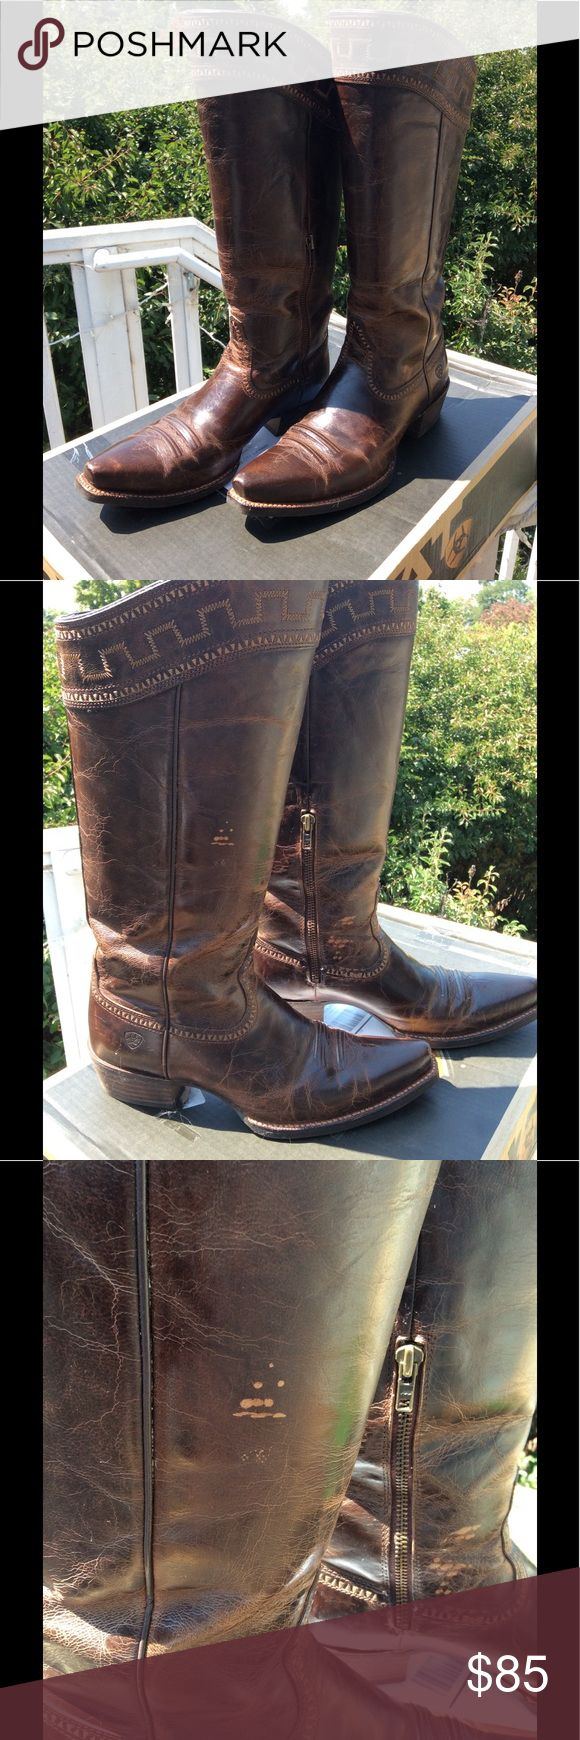 Ariat Sahara Cowboy Boots Size 11B Ariat Sahara Boots Size 11 B worn 3 times, minor scuffs and blemishes Ariat Shoes Heeled Boots